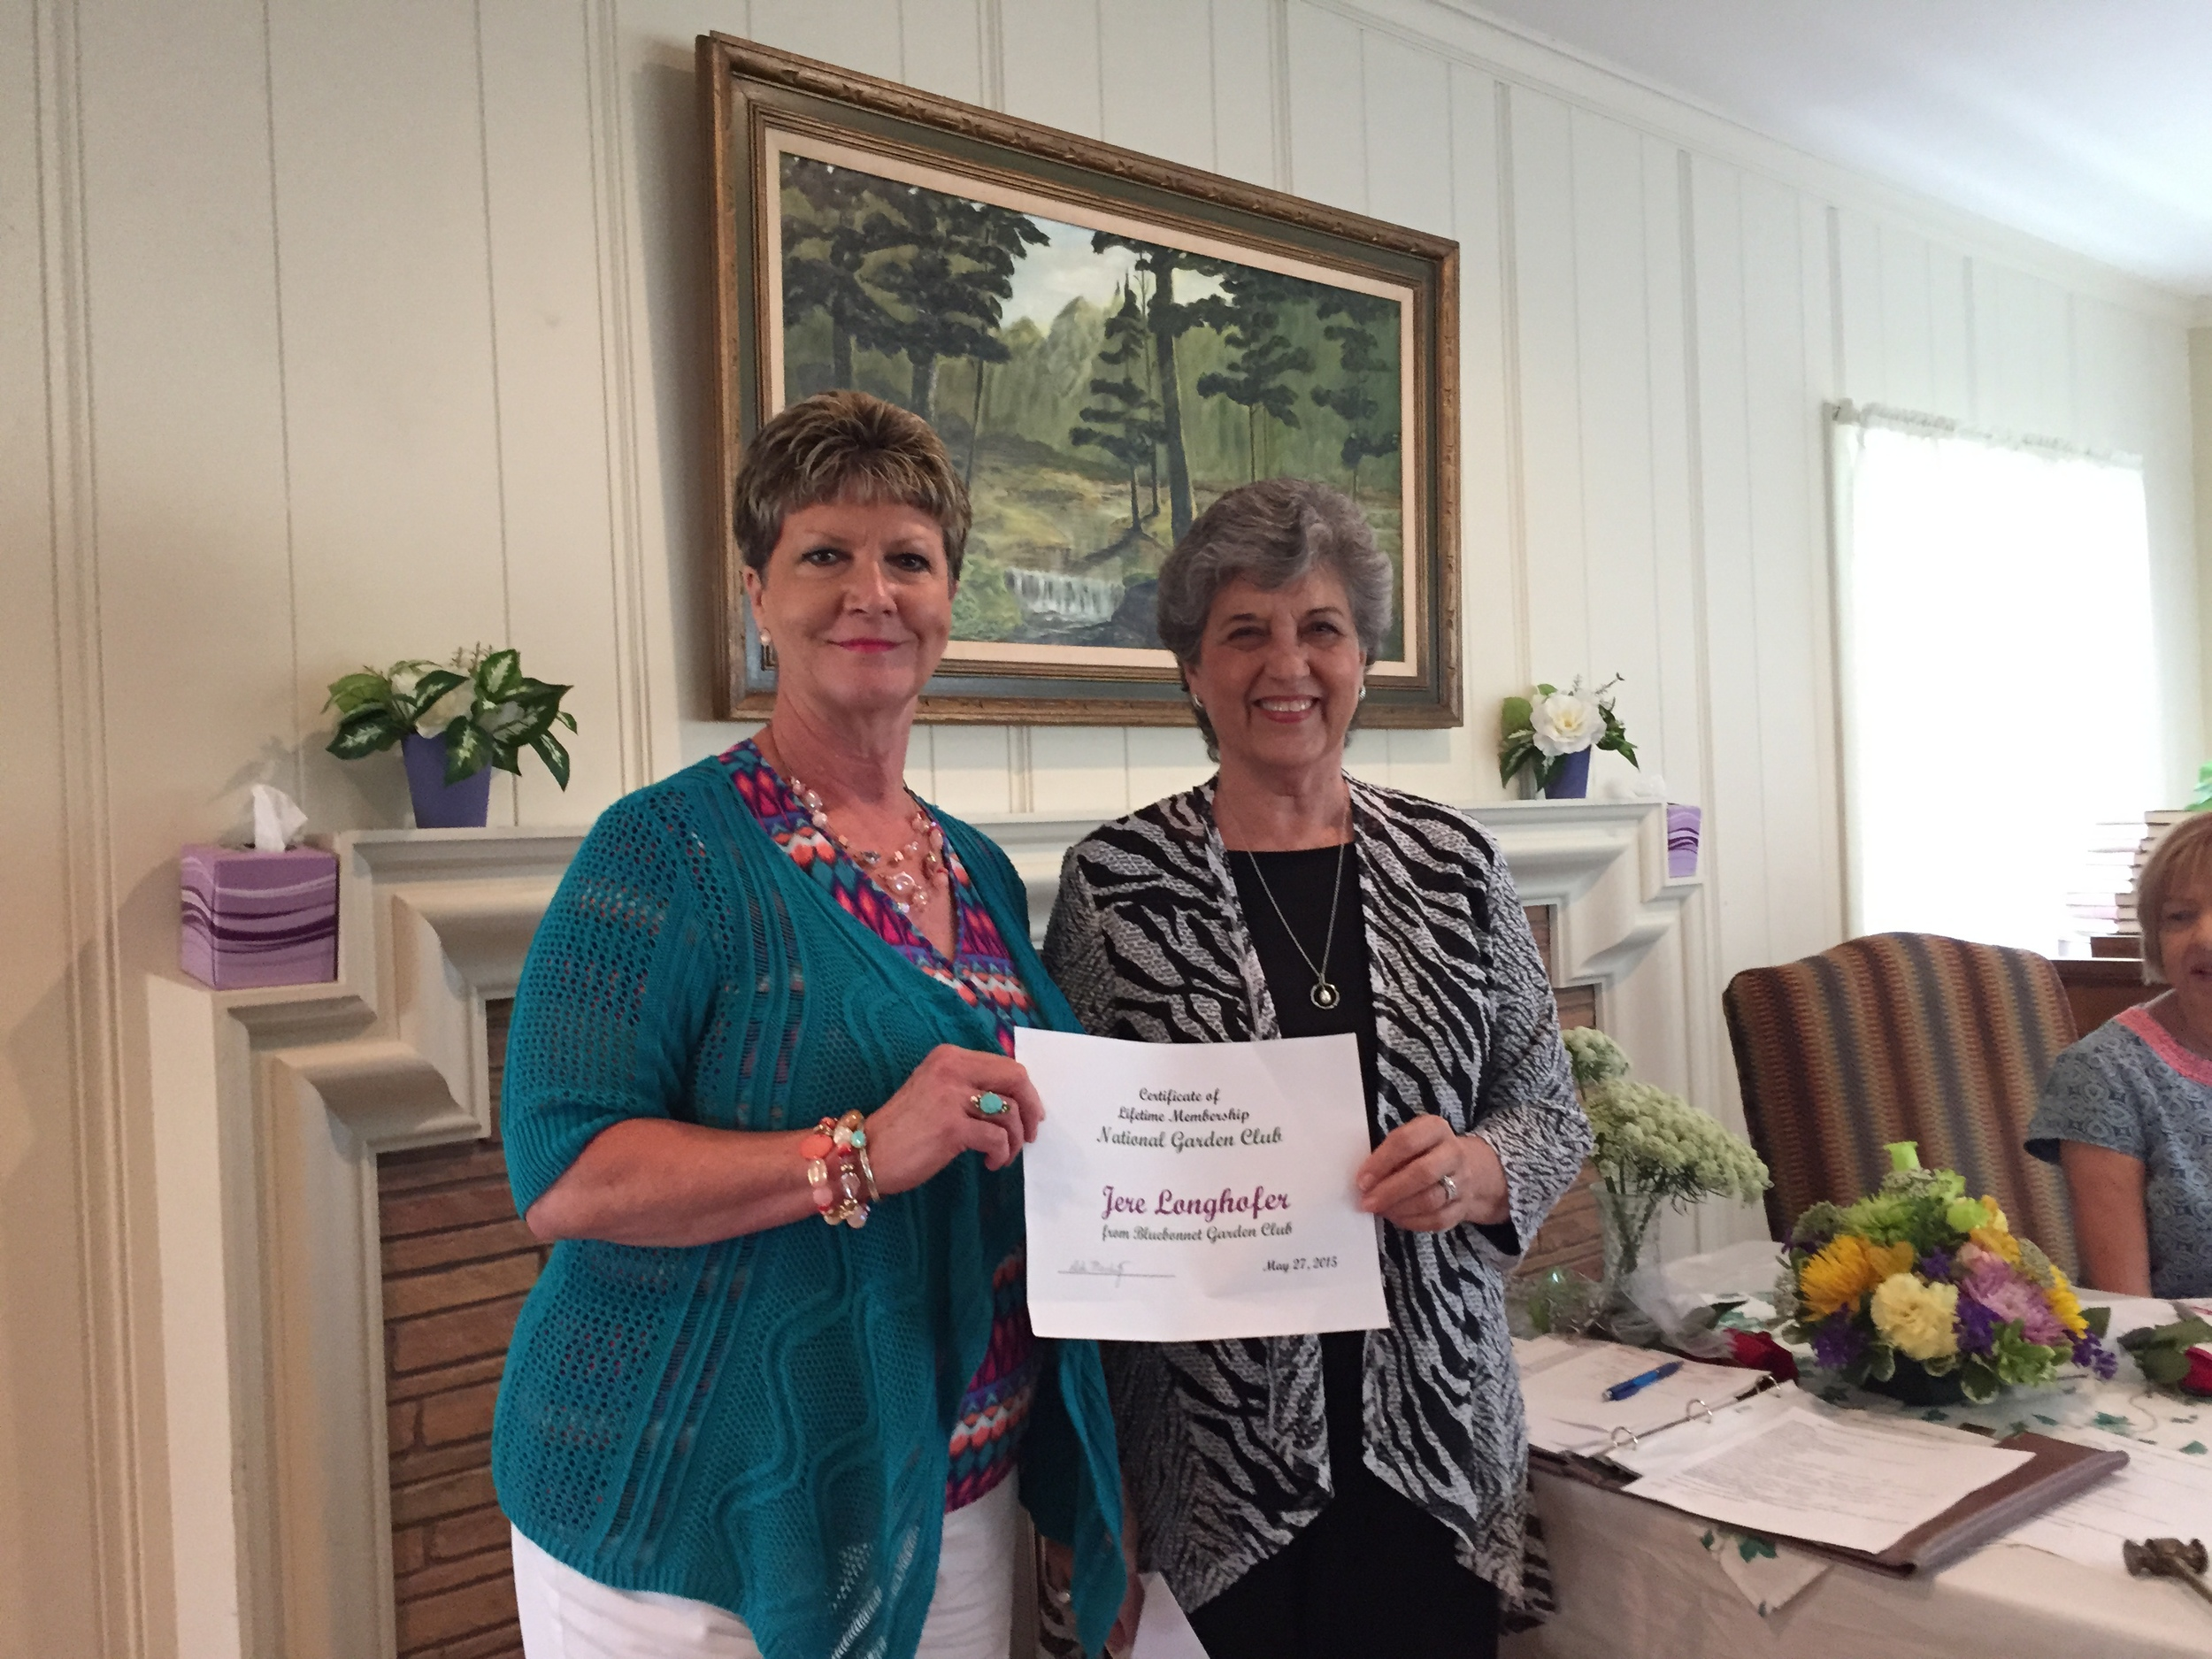 Debi Meschwitz presenting Jere Longhofer with a certificate for Lifetime Membership in National Garden Club.